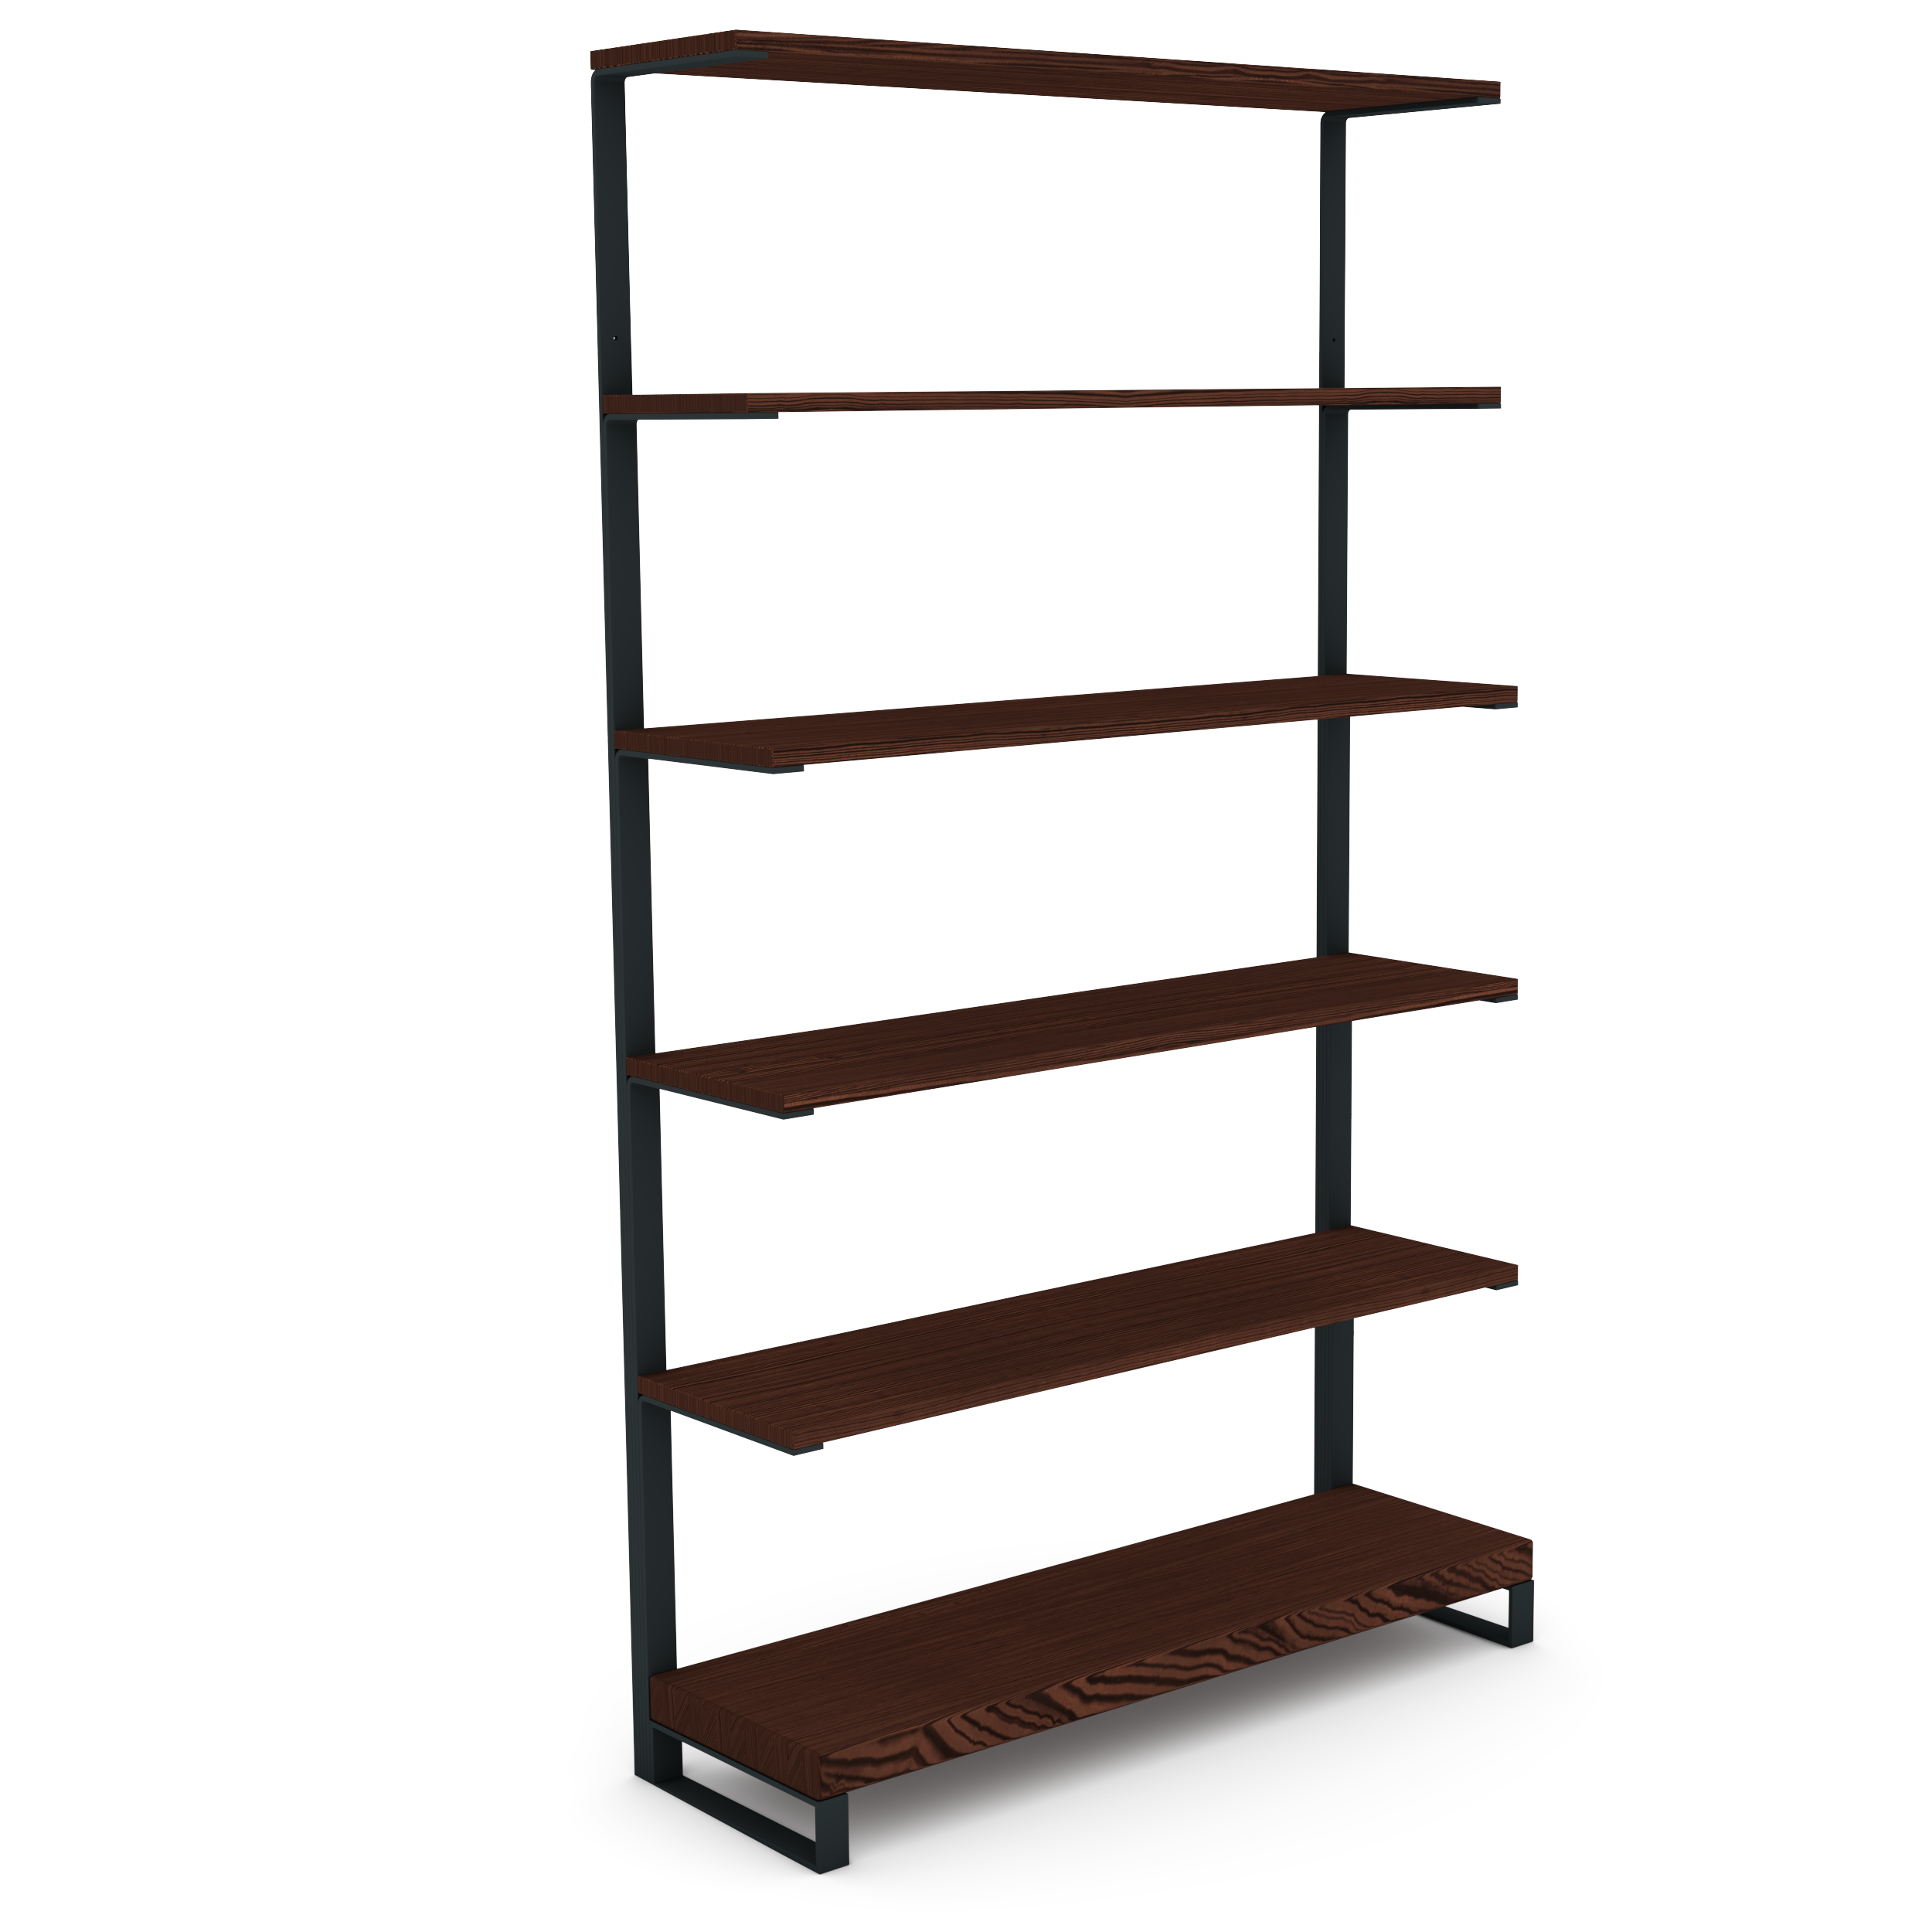 Bending Steel Shelving Unit